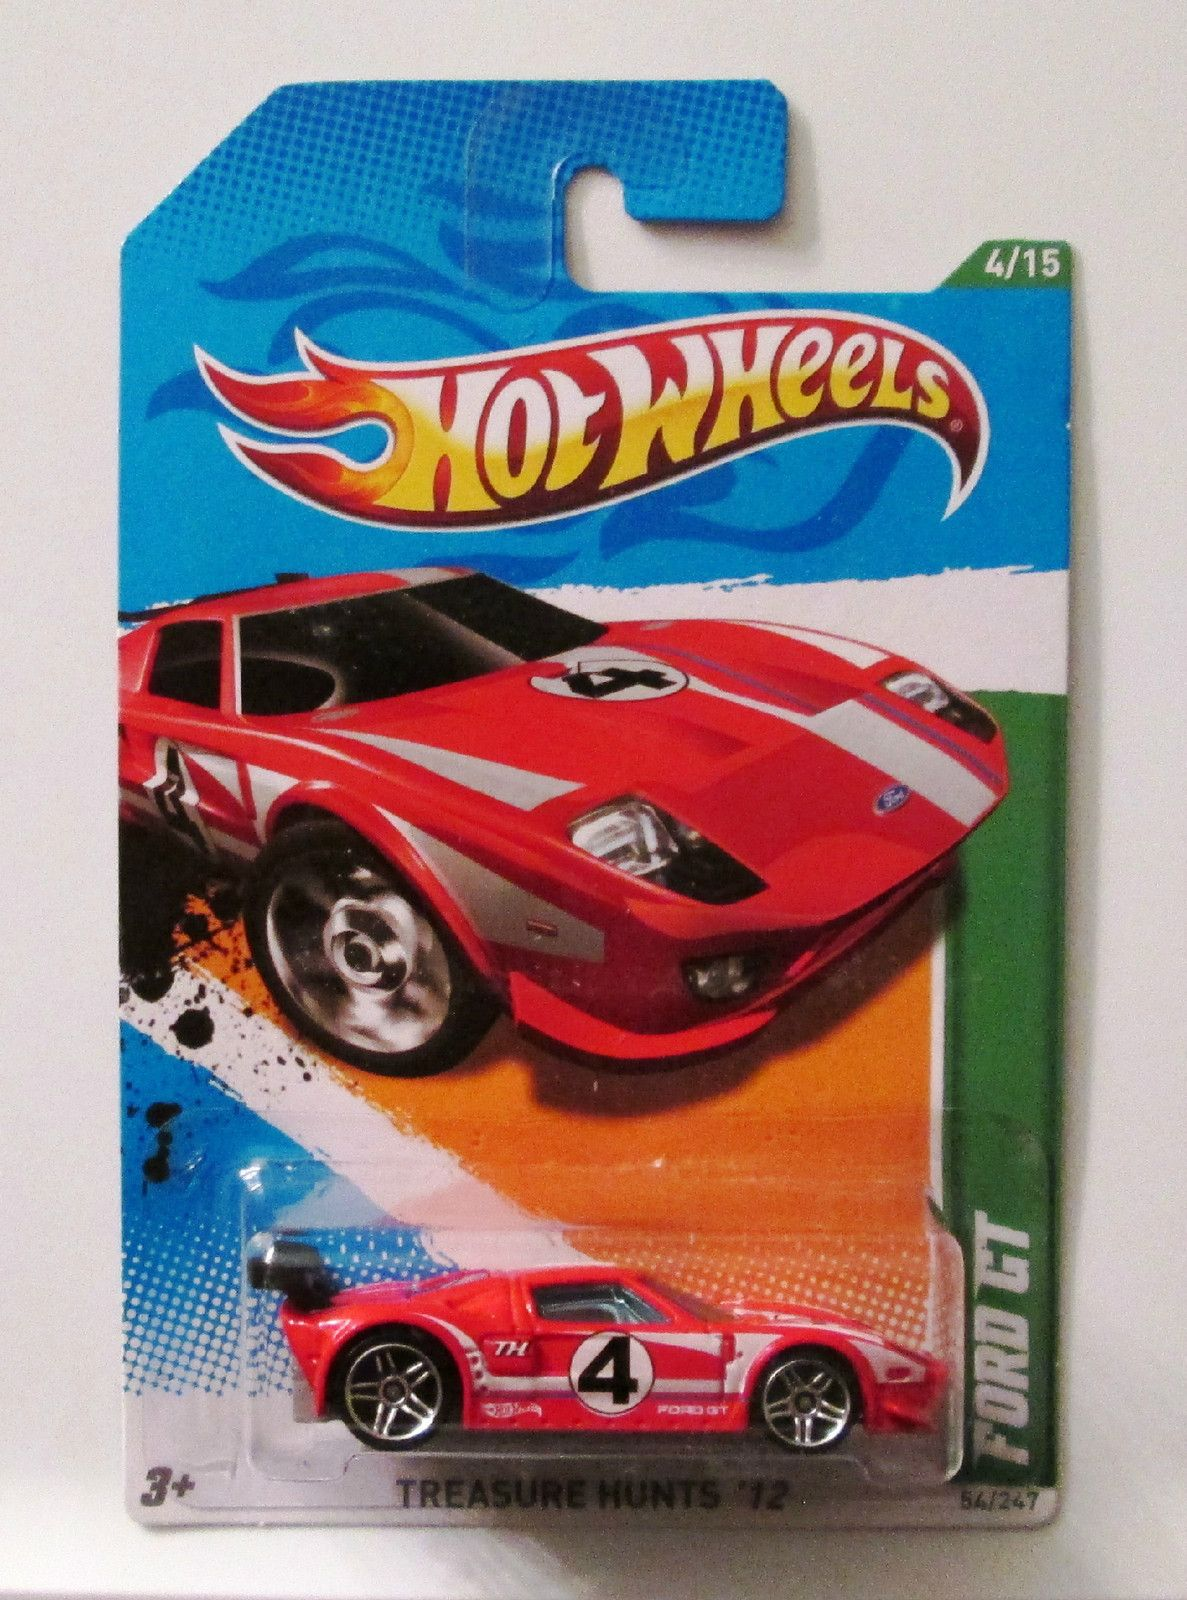 Hot Wheels 2012 Treasure Hunt Ford Gt Red Very Rare Ford Gt Hot Wheels Cars Hot Wheels